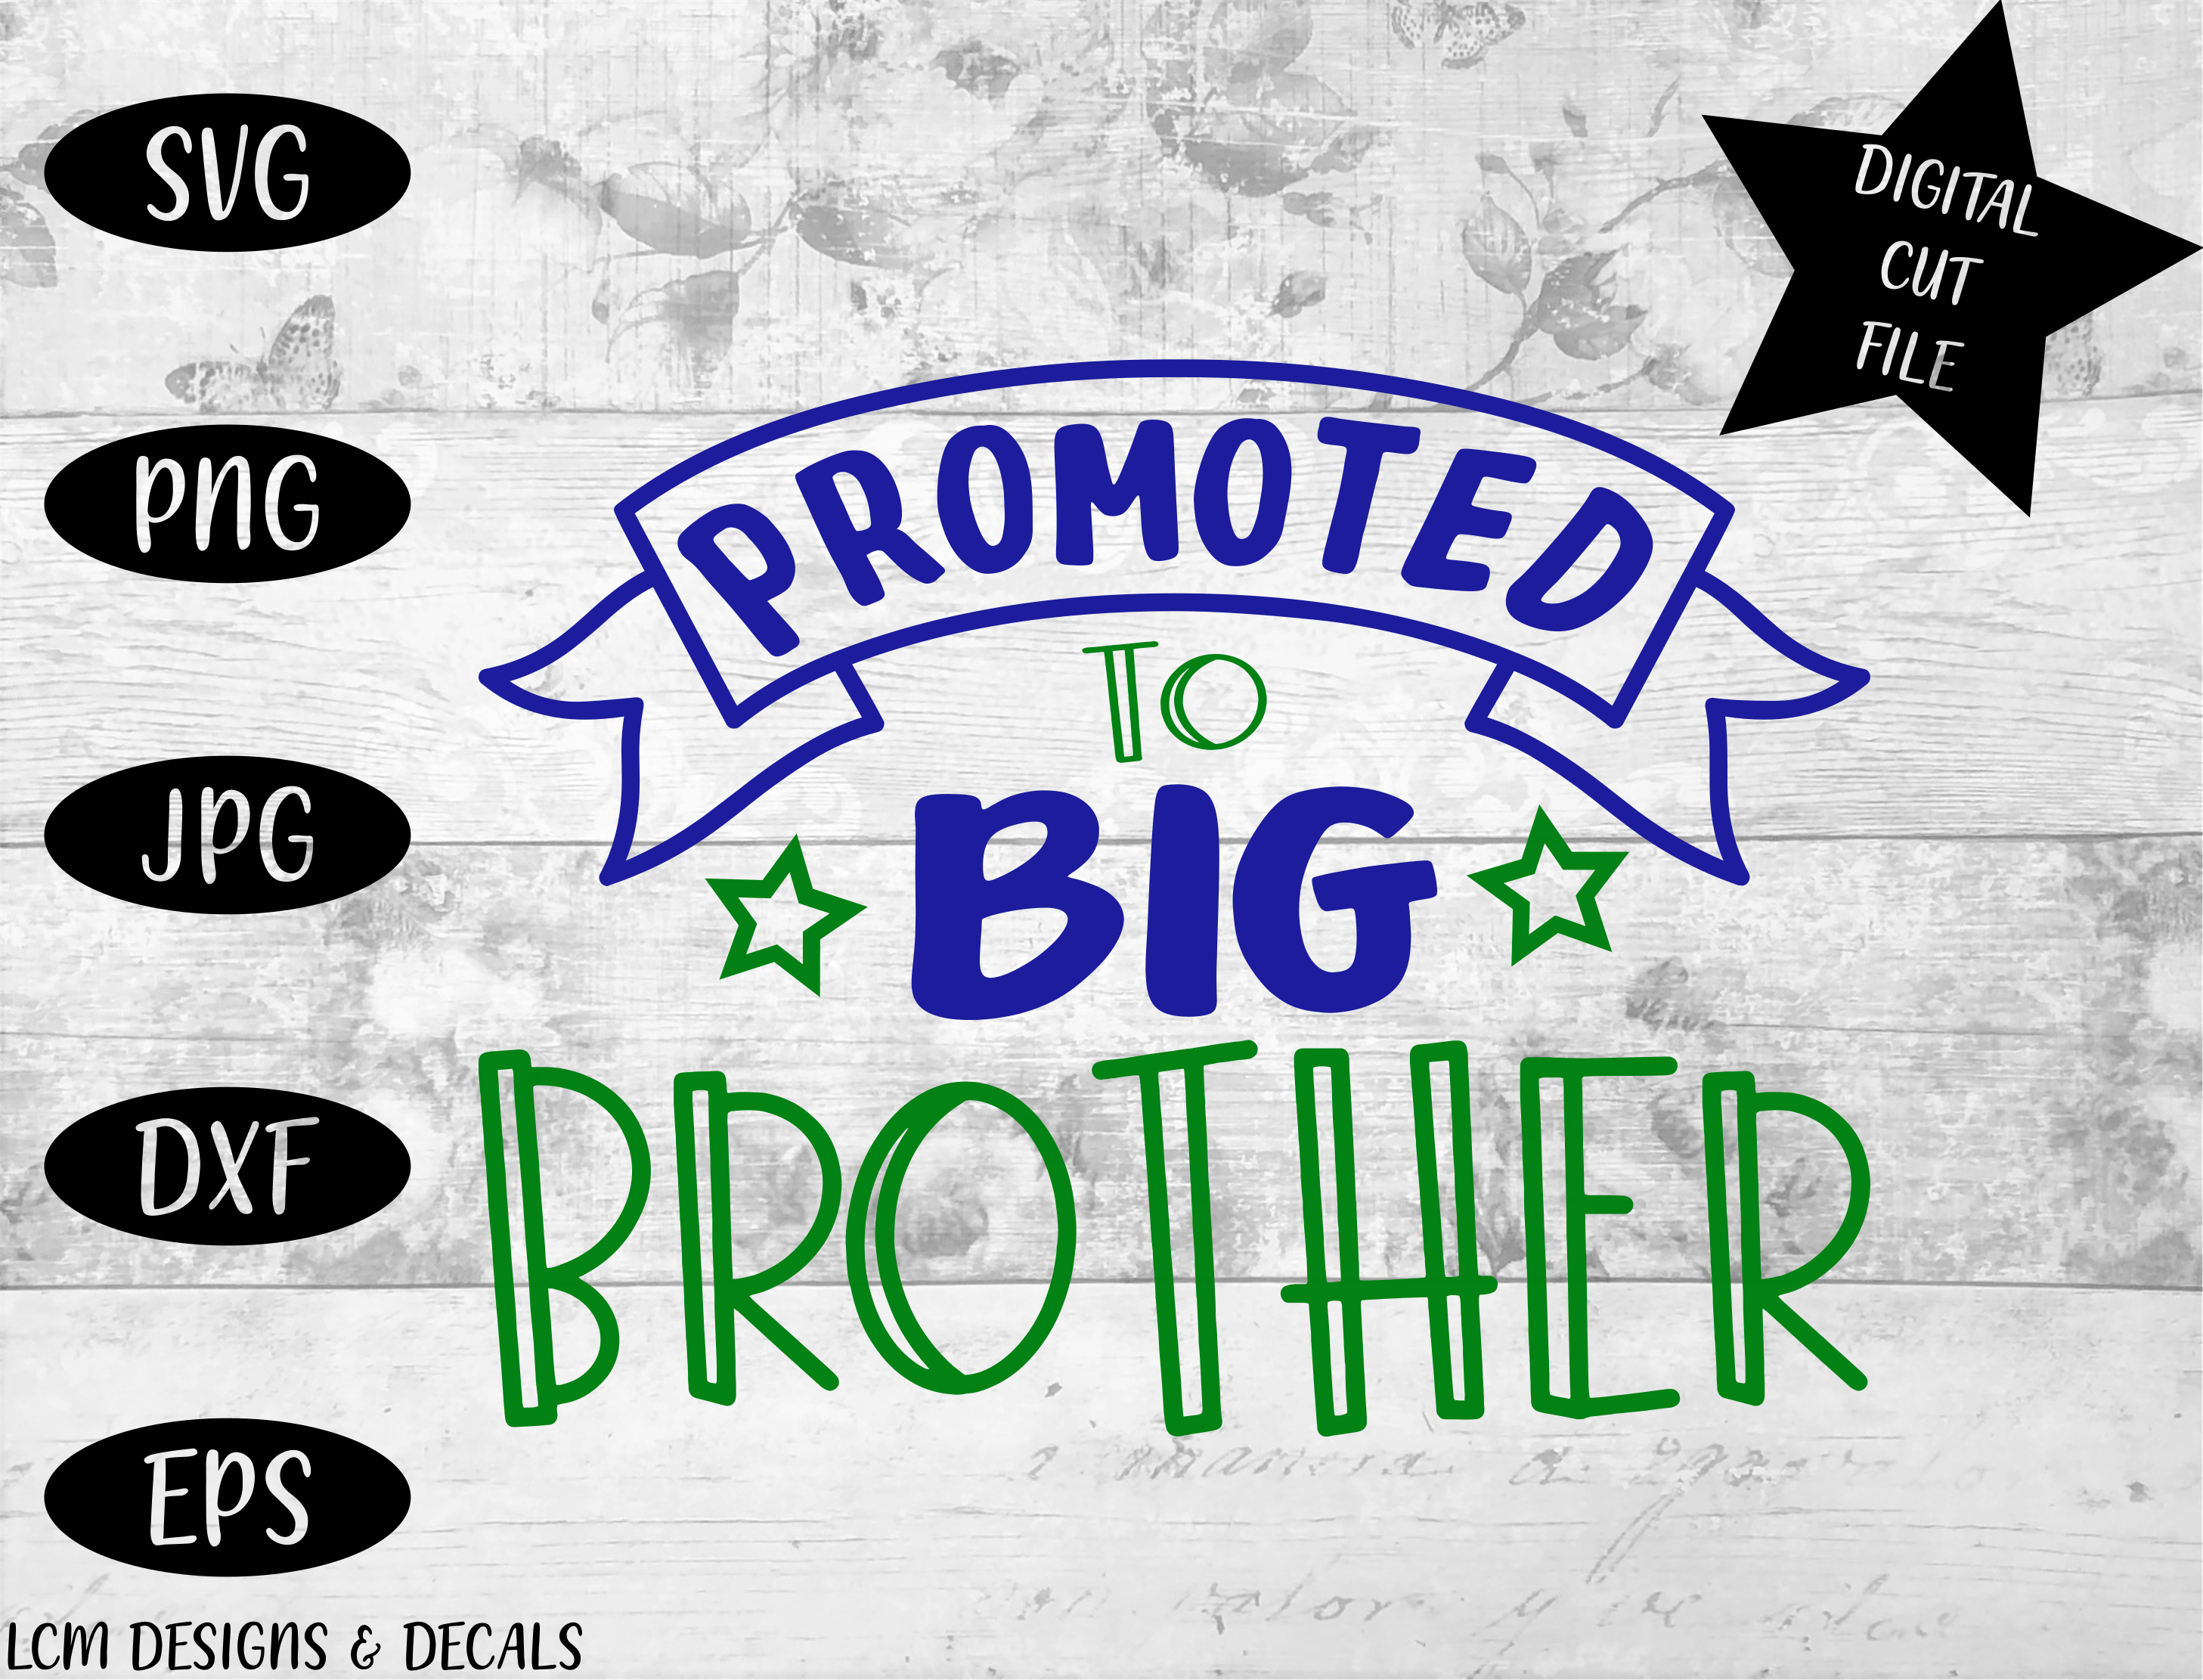 Download Free Promoted To Big Brother Graphic By Lcm Designs Creative Fabrica for Cricut Explore, Silhouette and other cutting machines.